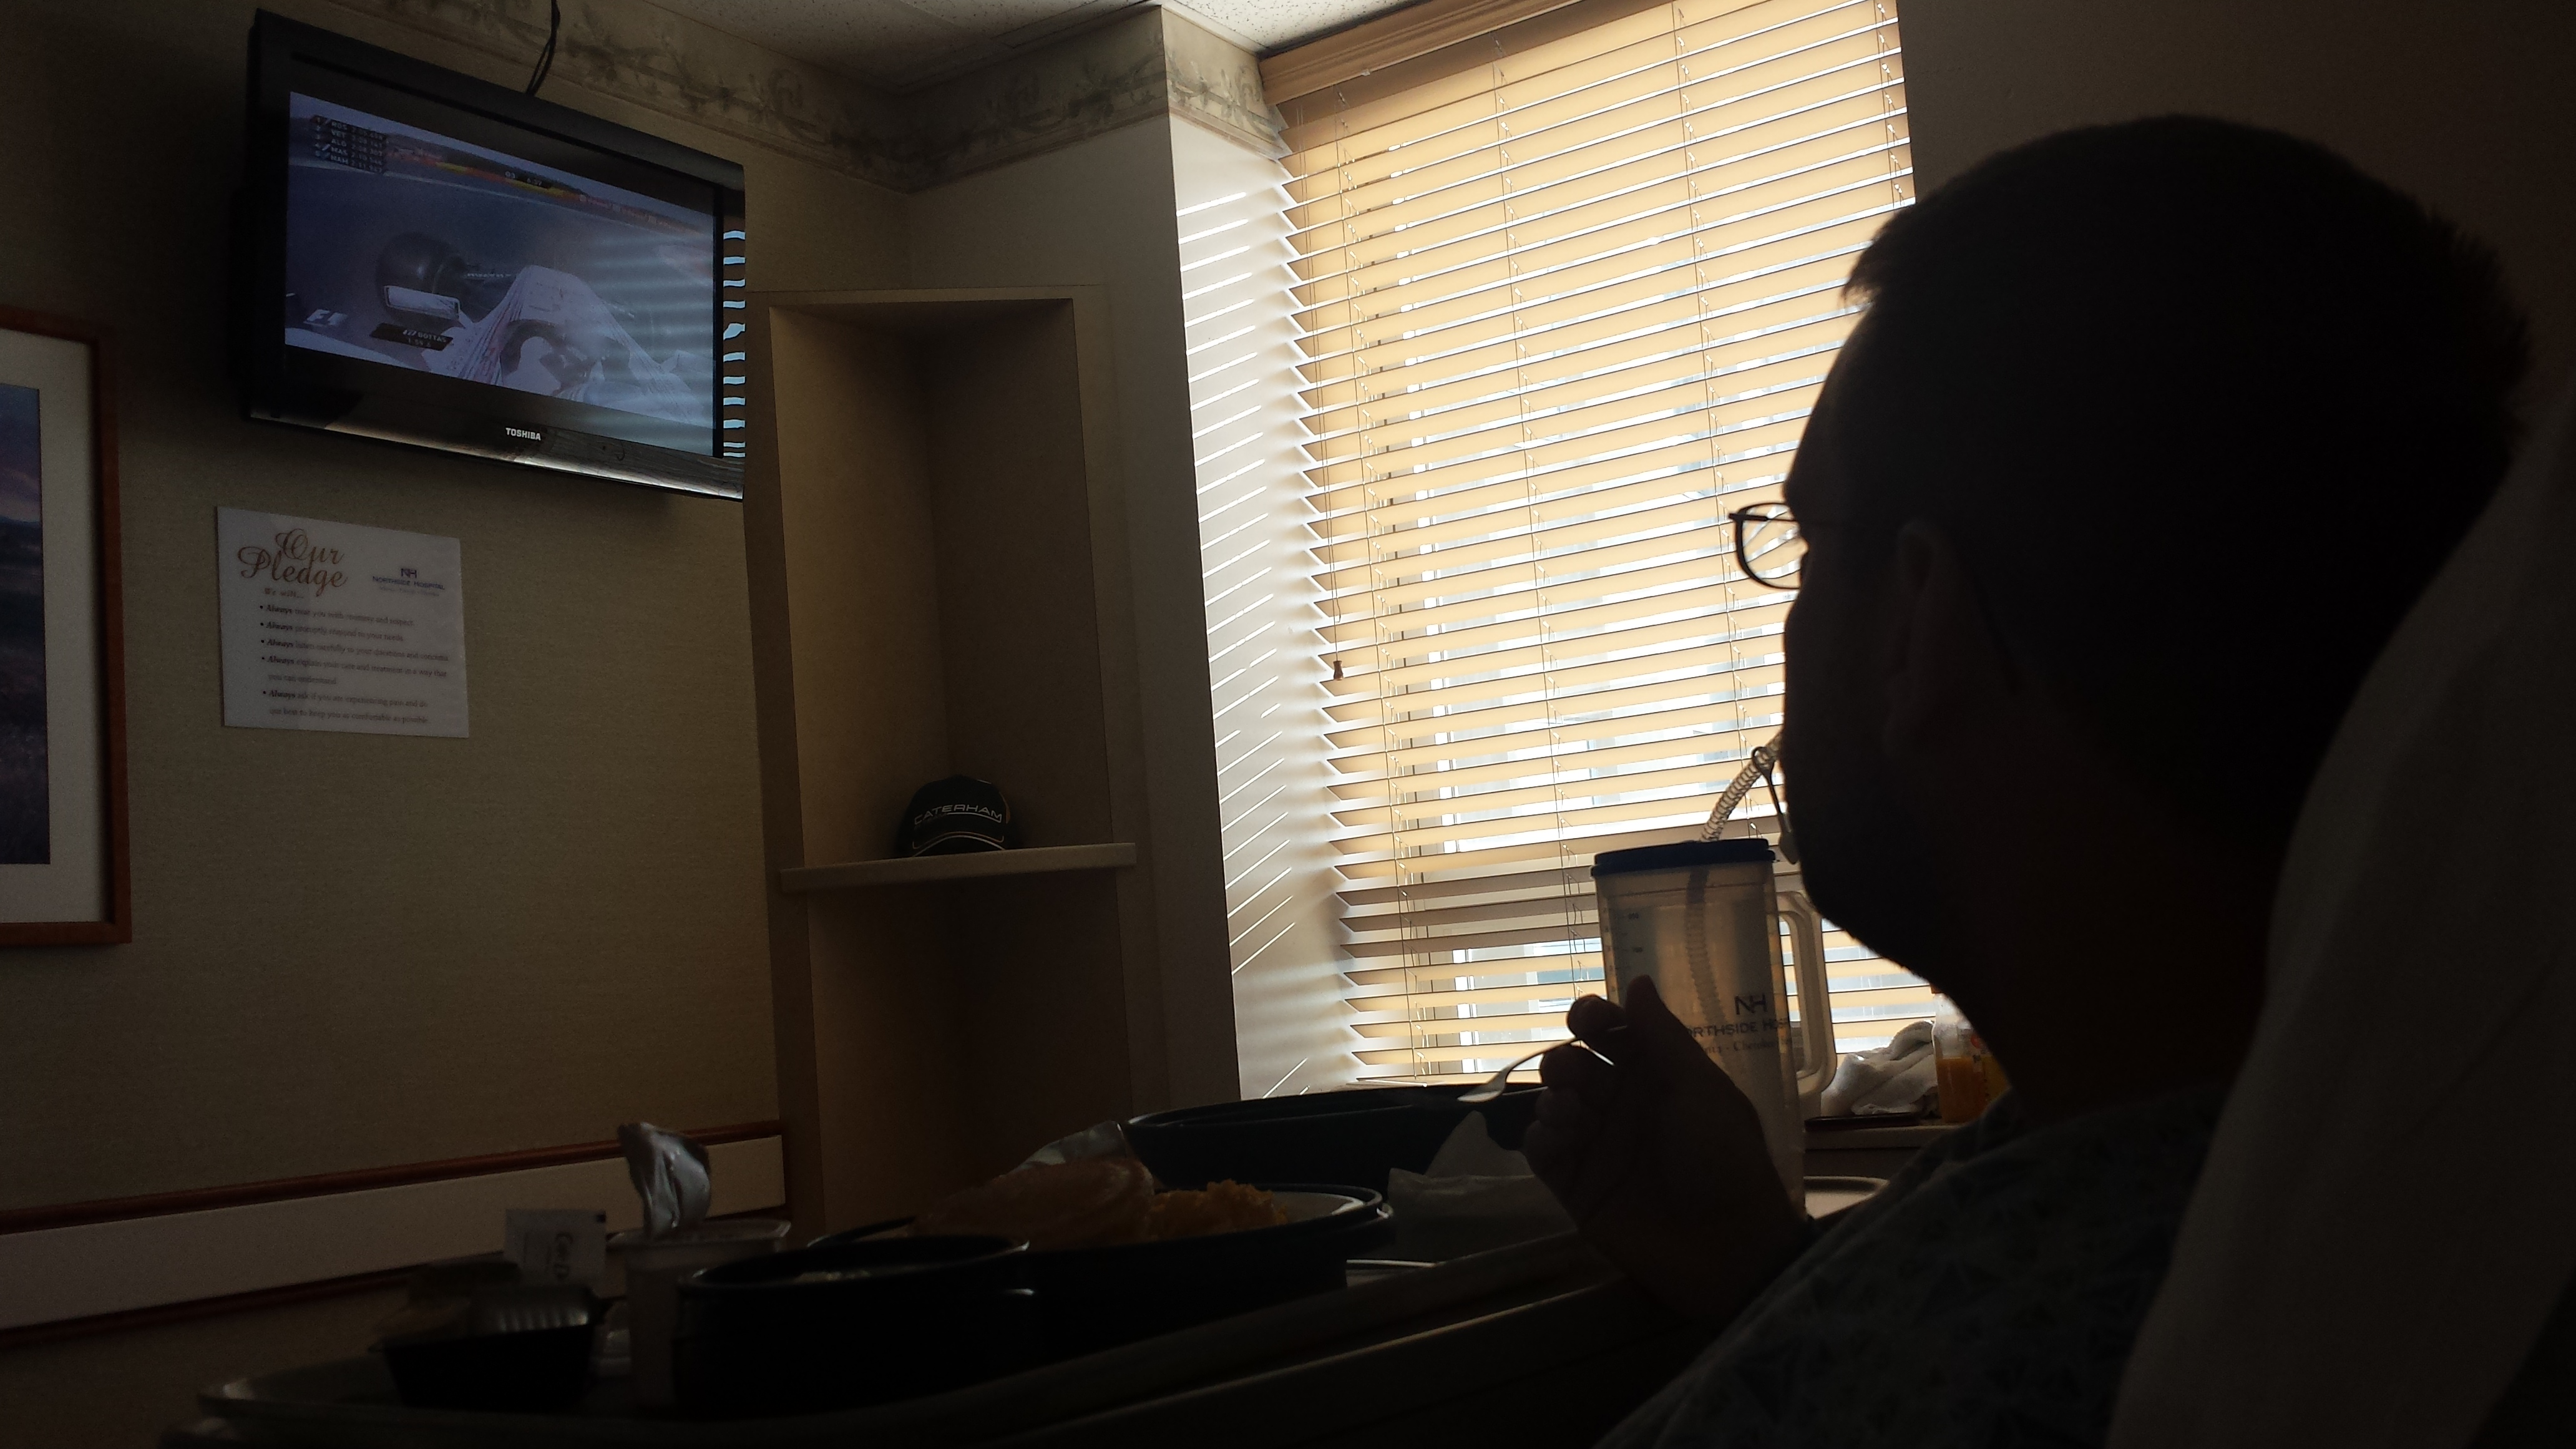 F1 and breakfast